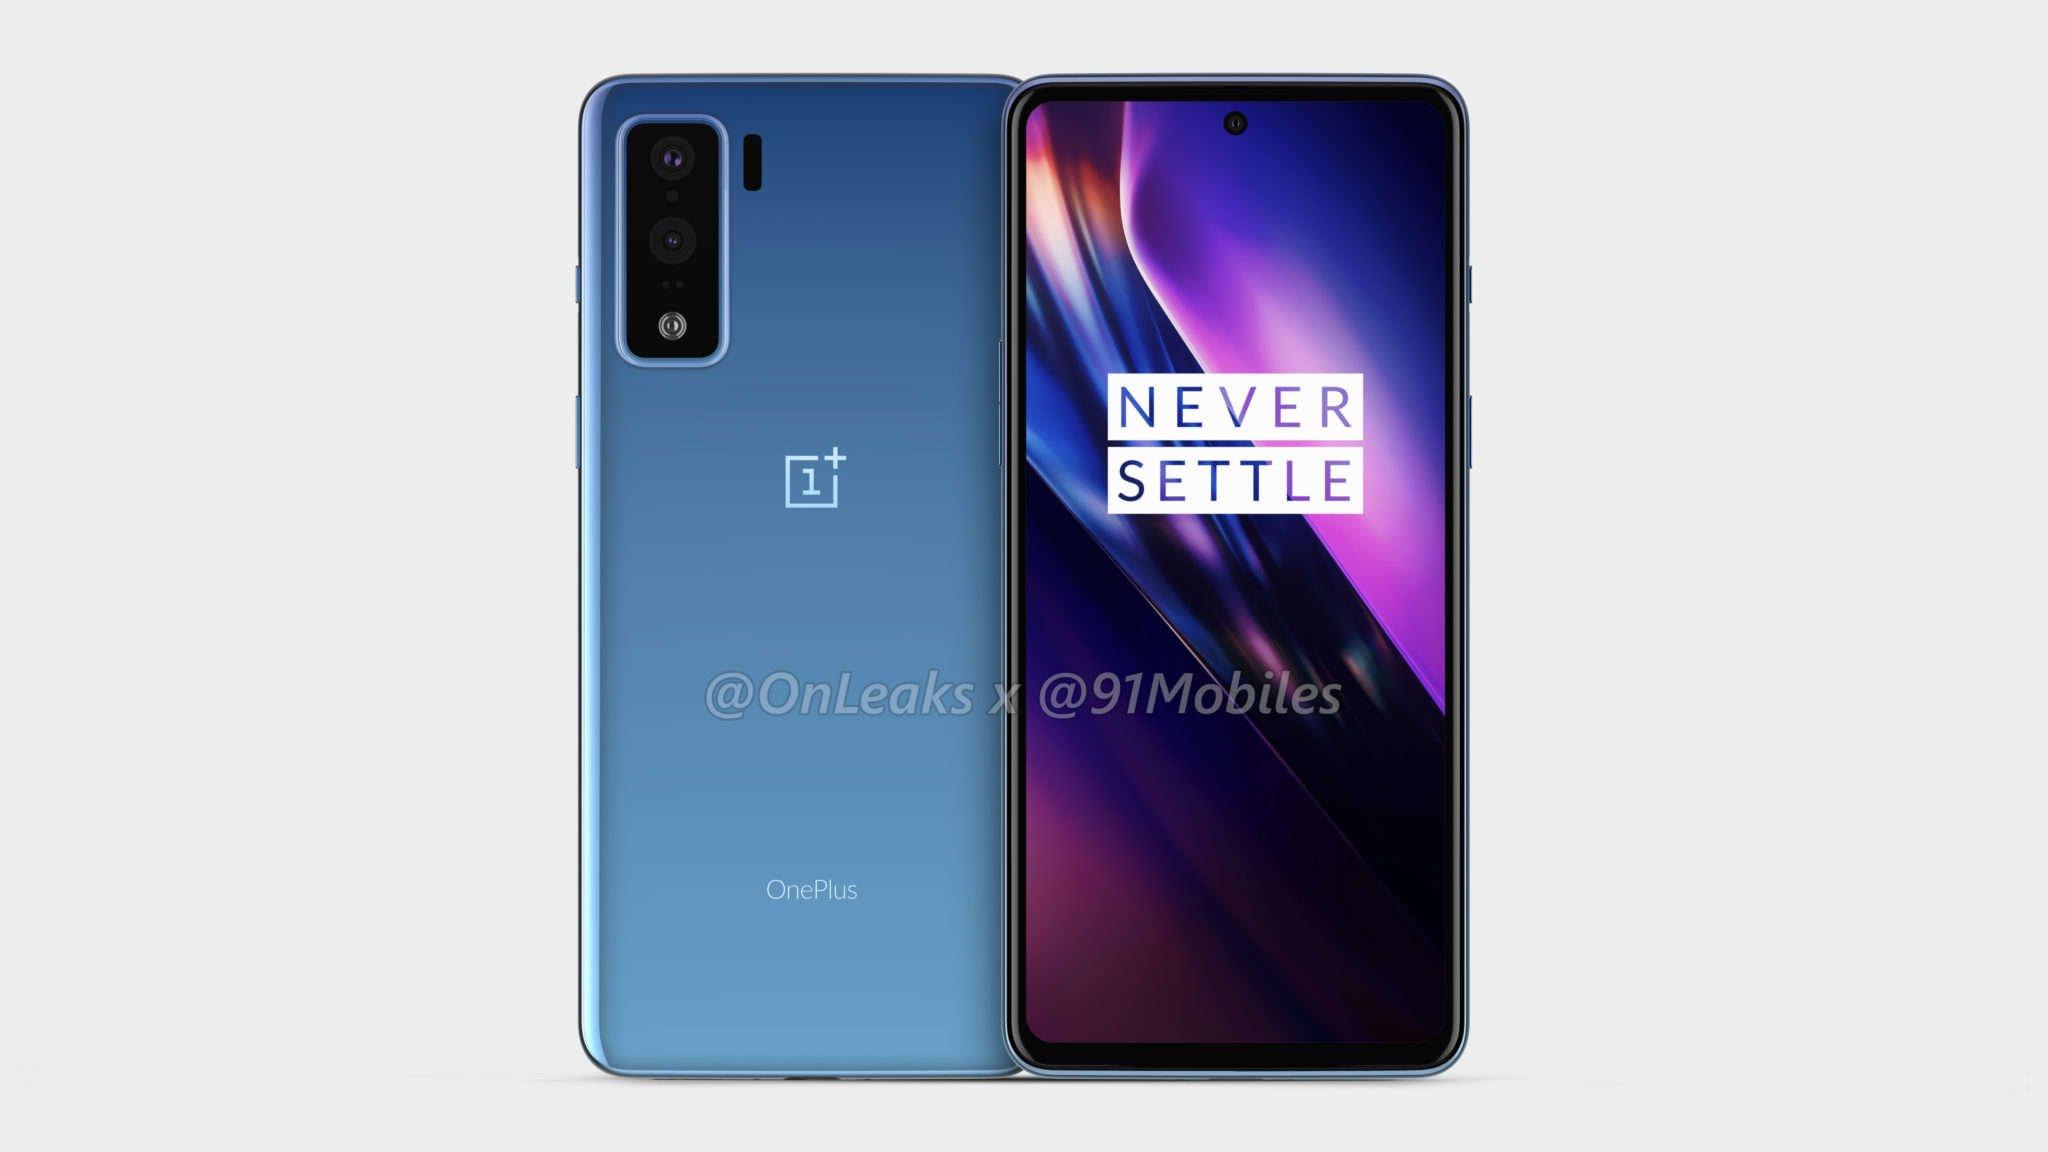 Source: 91 Mobiles/On Leaks